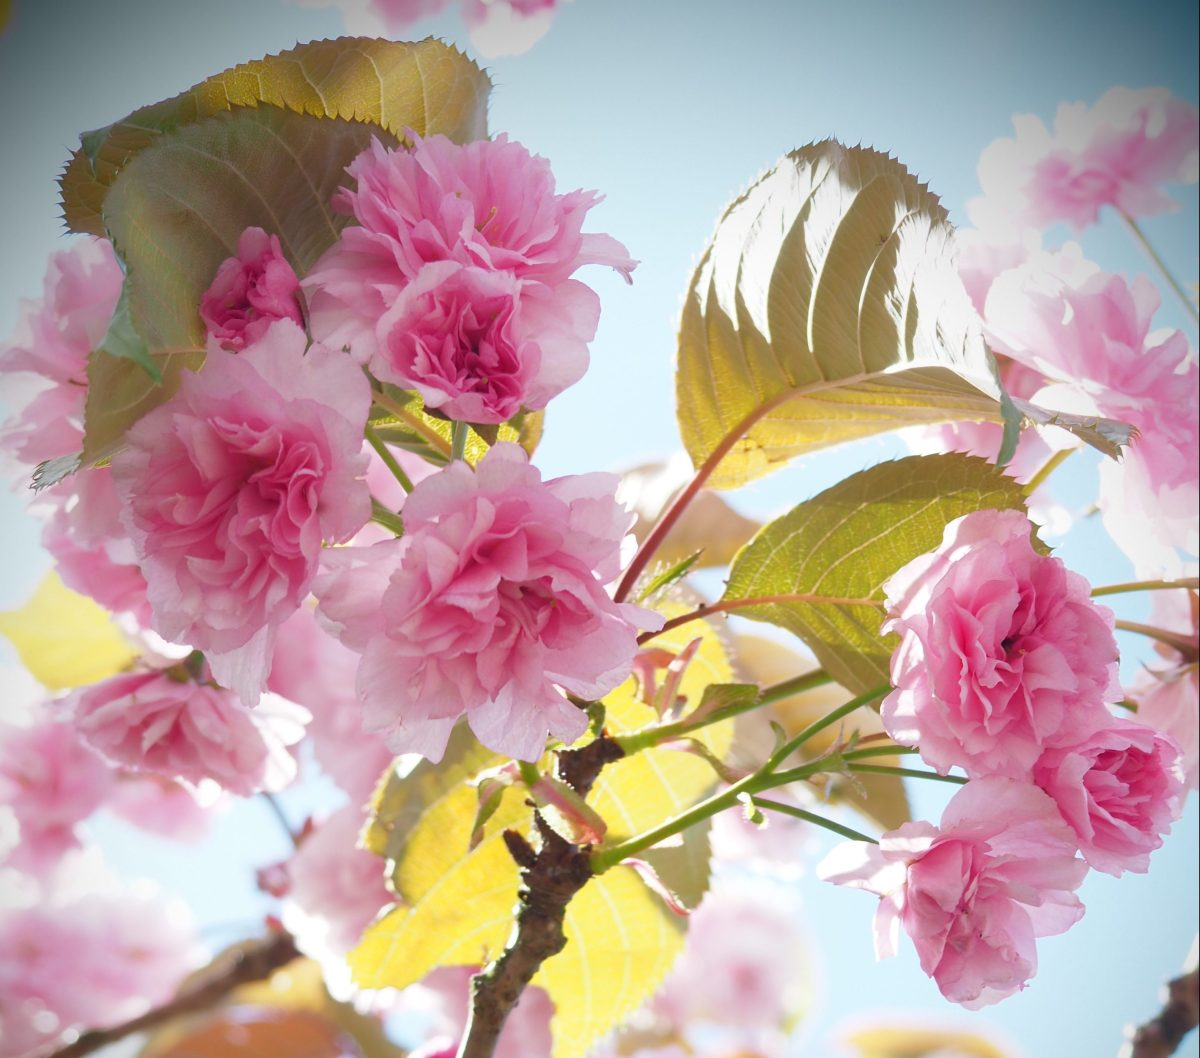 Pretty in Pink: Cherry Blossom Photography & Symbology